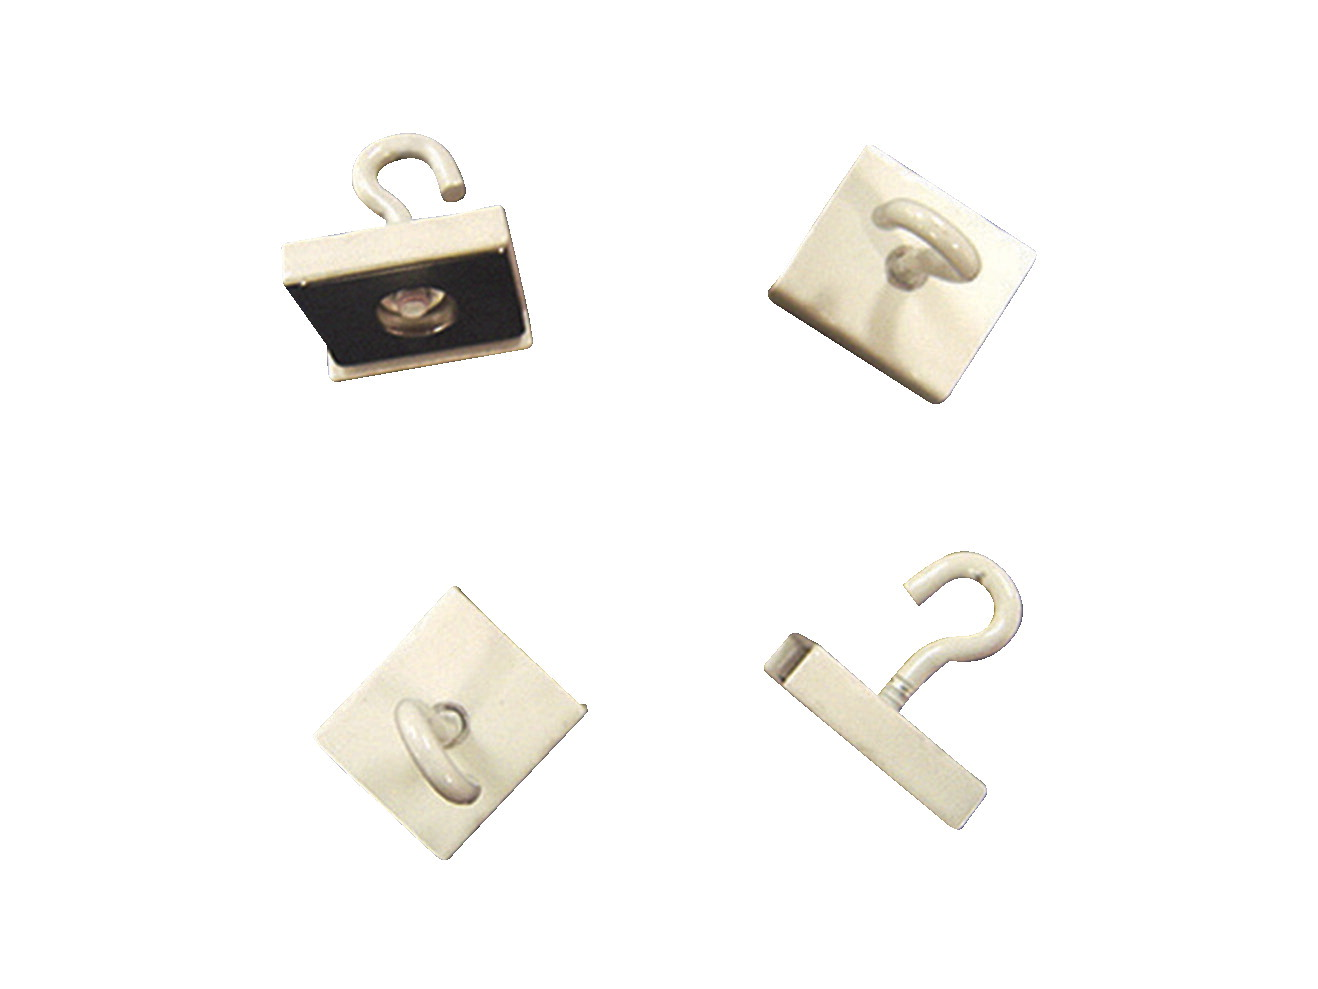 Magnetic ceiling tile hooks pranksenders magnetic ceiling tile hooks pranksenders dailygadgetfo Image collections